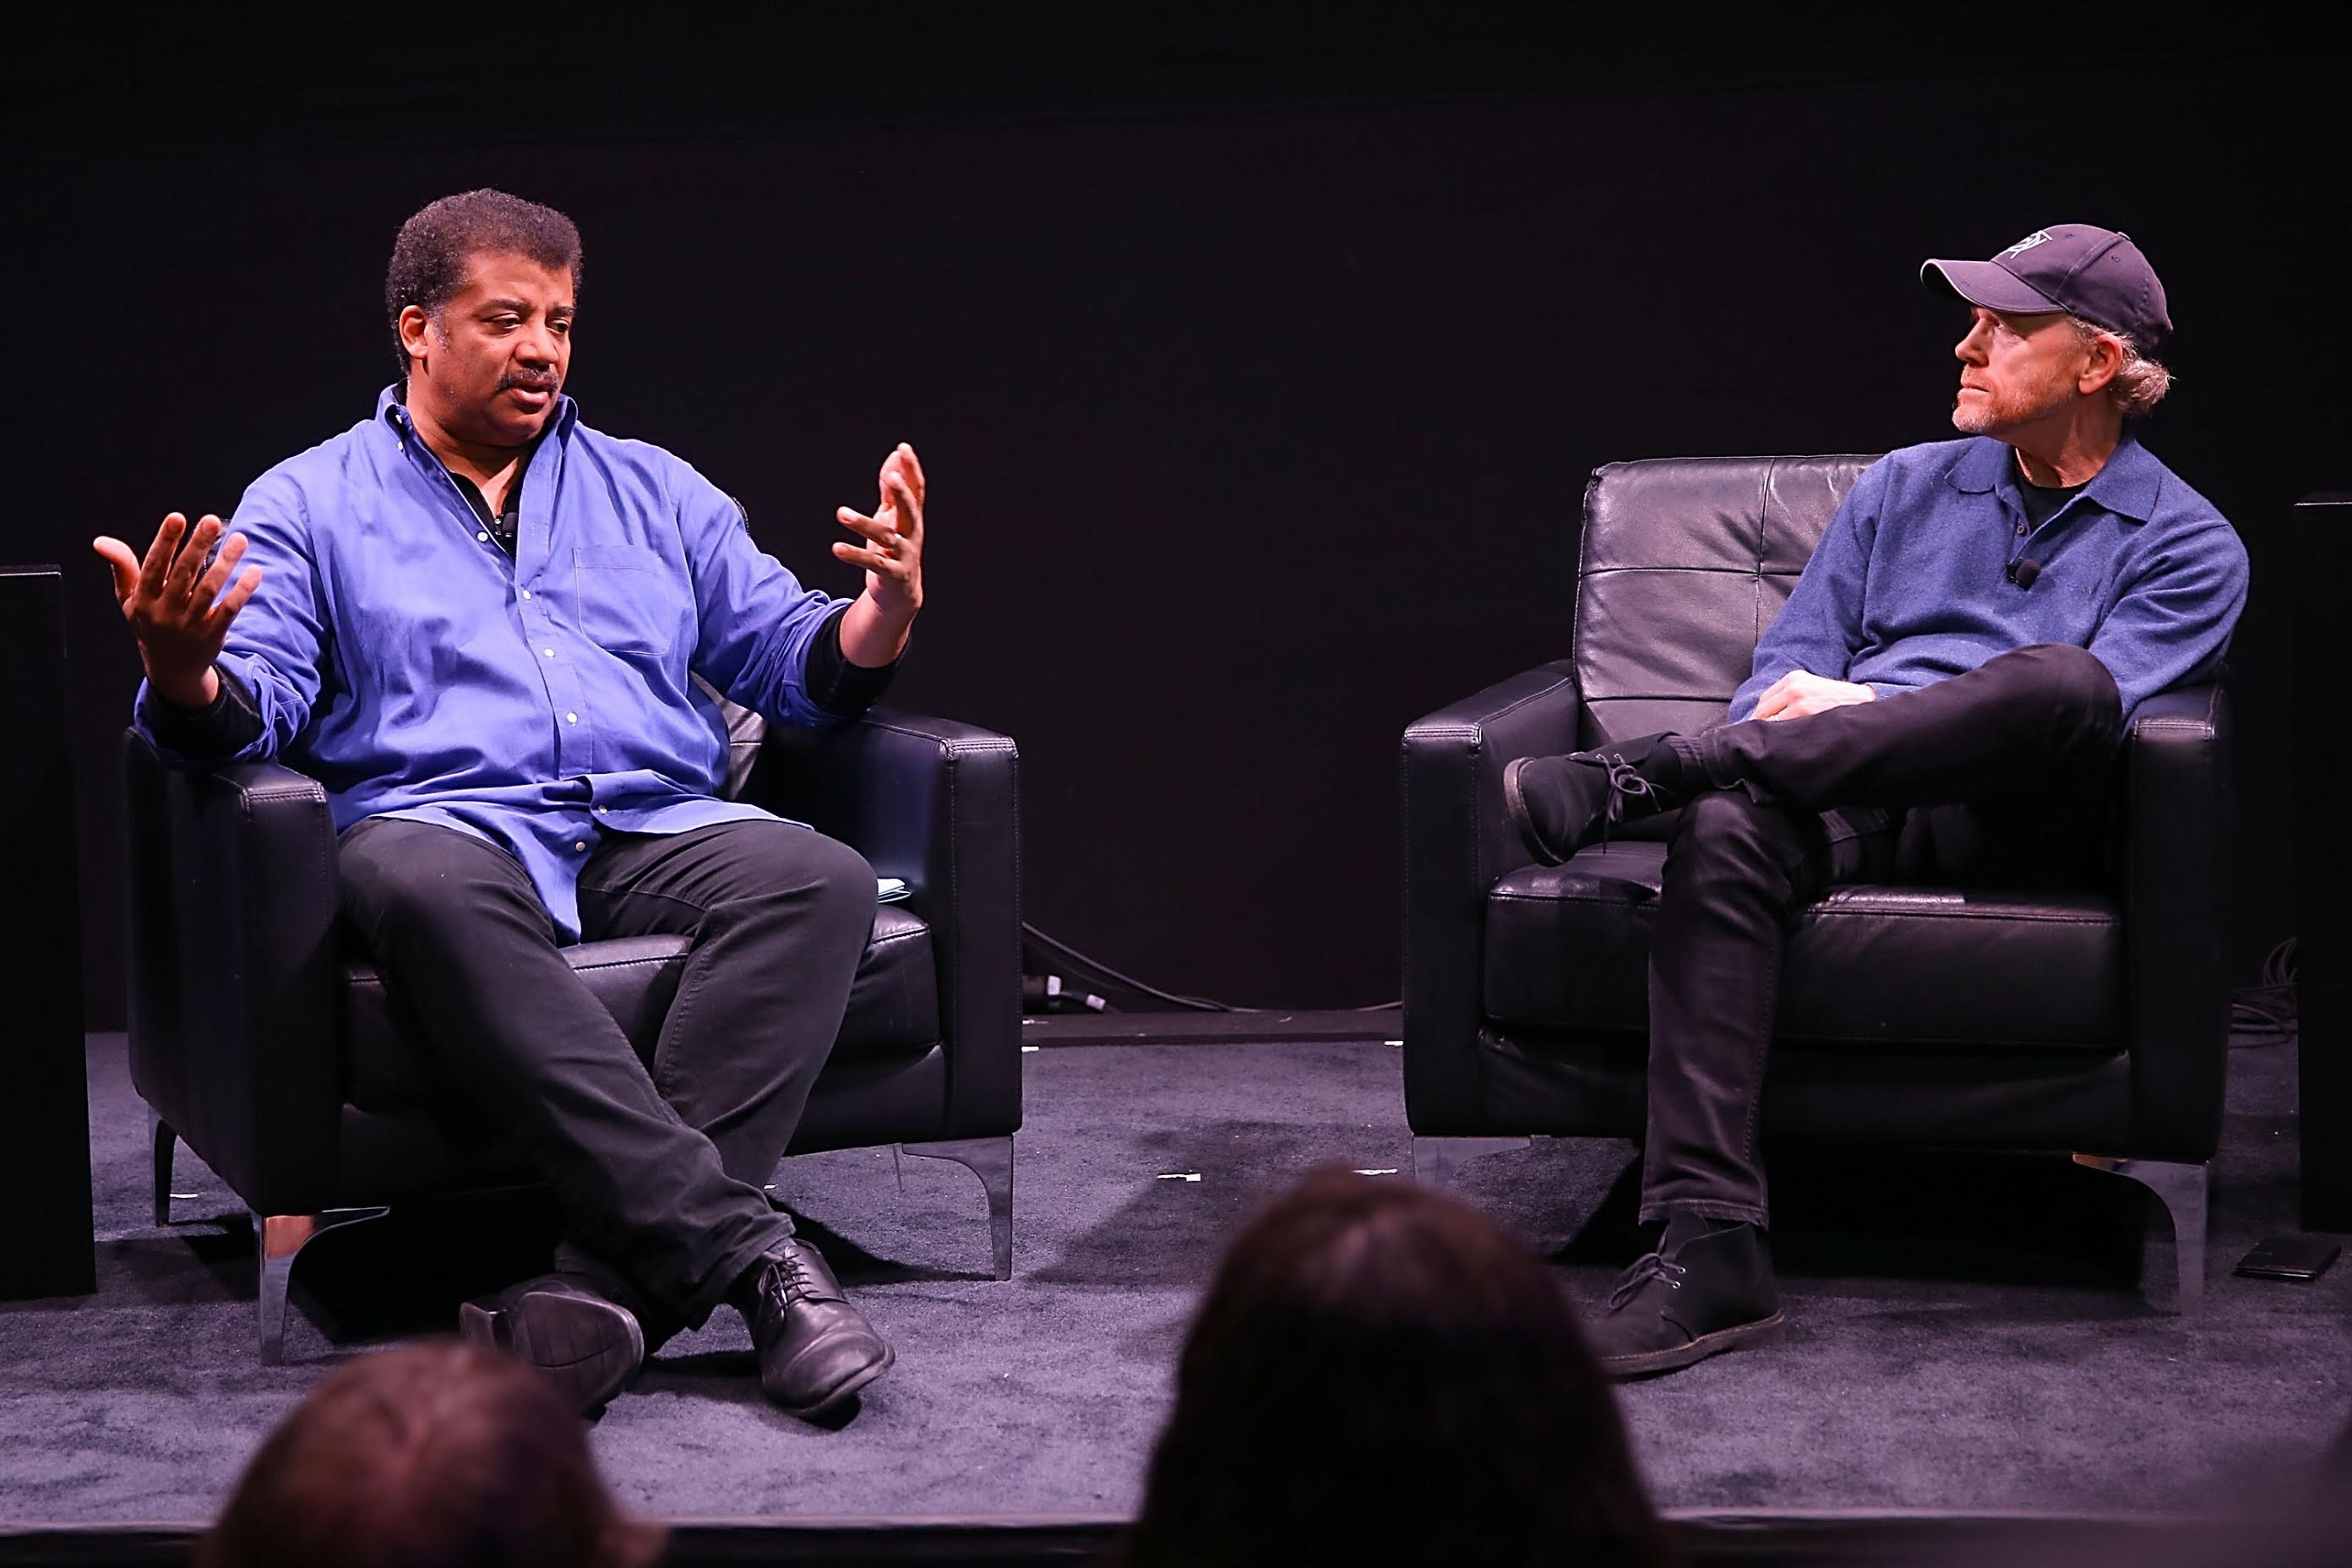 National Geographic Announces New Season of Emmy®-Nominated Series StarTalk with Neil deGrasse Tyson. (Photo: Business Wire)